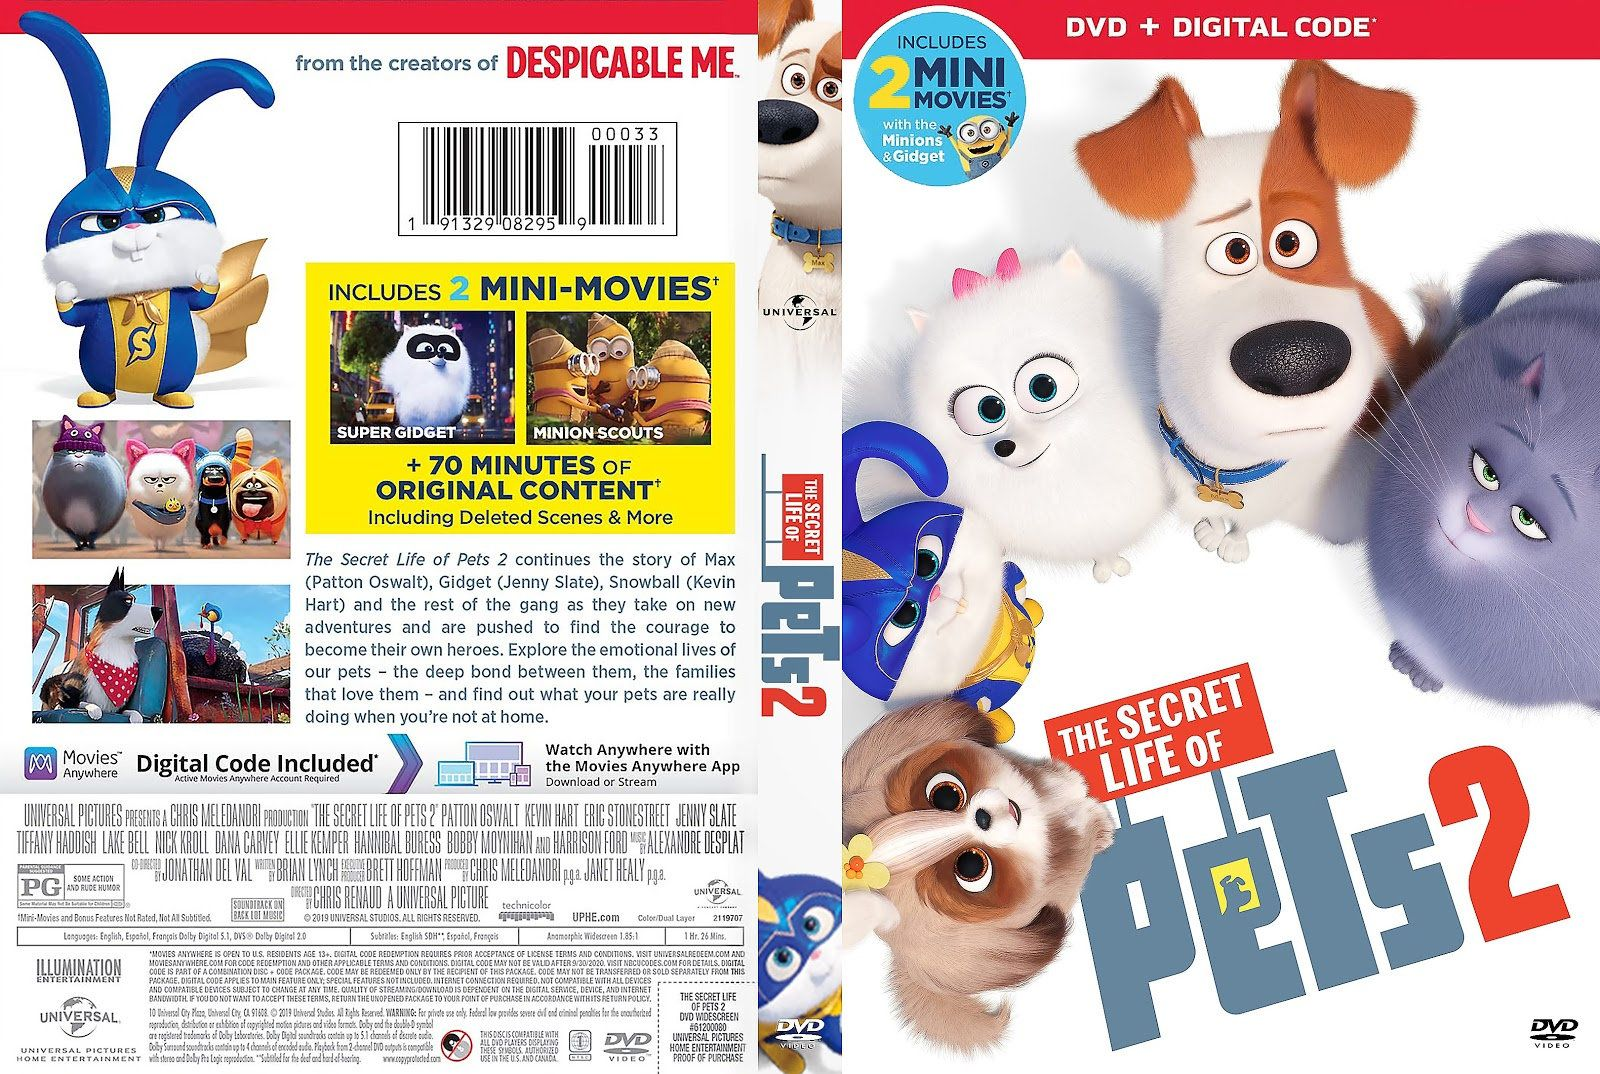 Secret Life Of Pets 2 Dvd Free Shipping Worldwide 2019 In 2020 Secret Life Of Pets Dvd Covers Pets